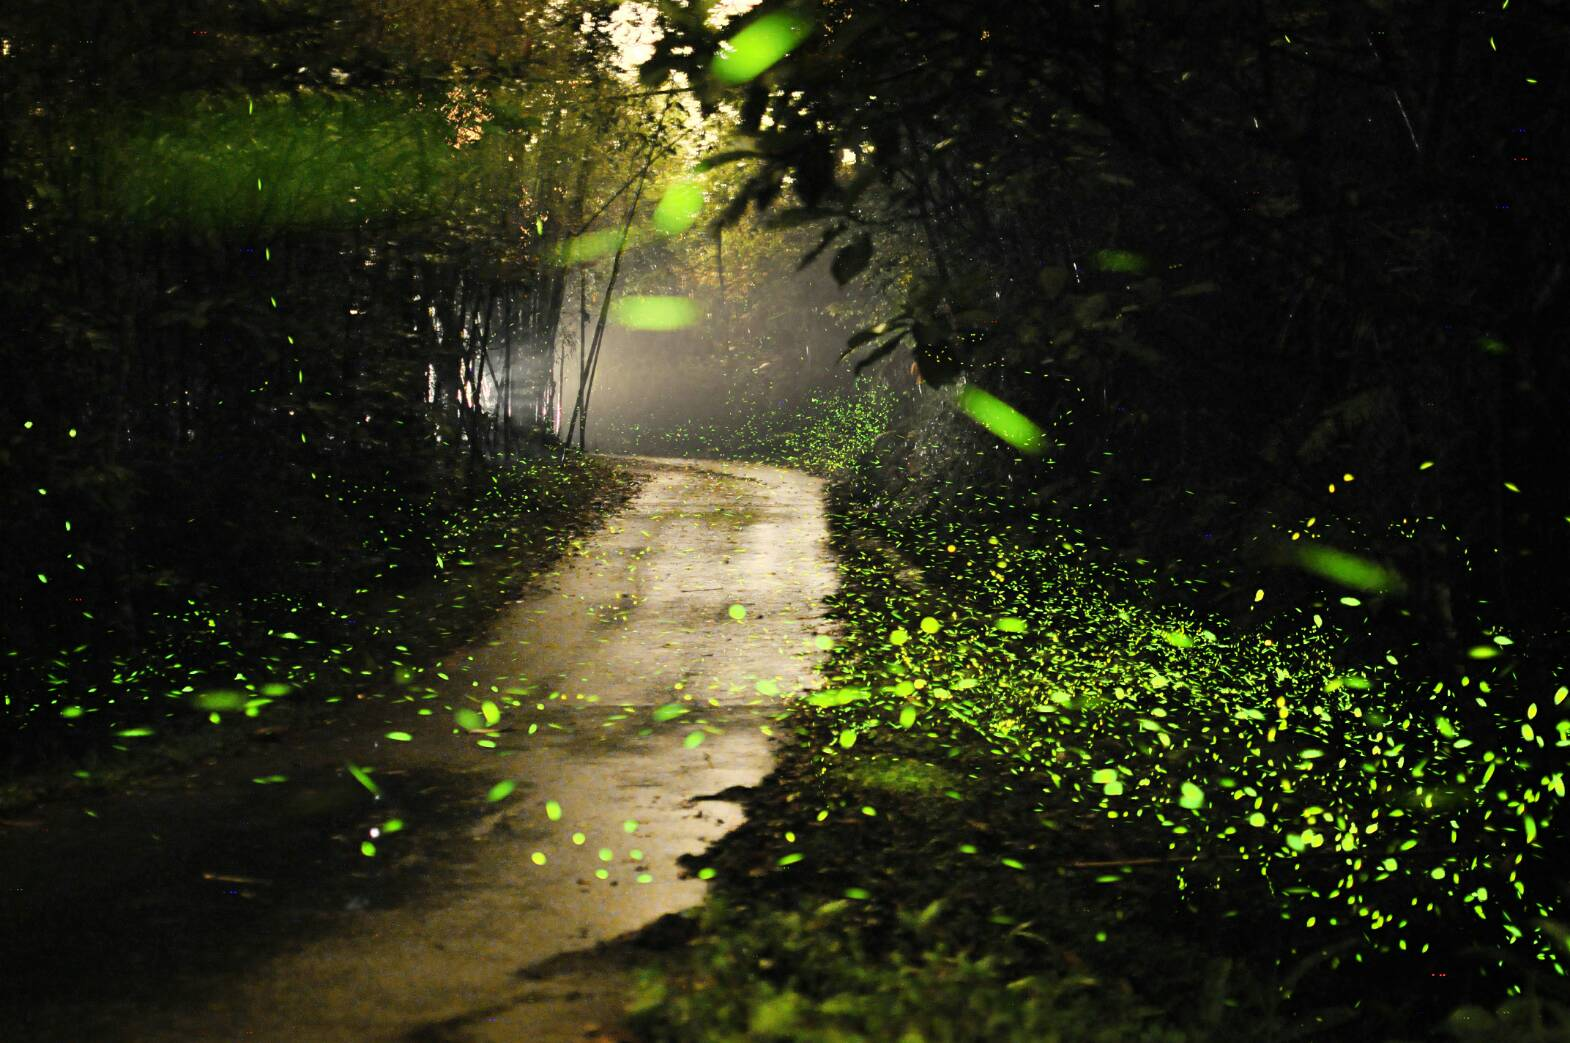 Map Of Best Firefly Viewing Spots In Taiwan Taiwan News - Fireflies map of us